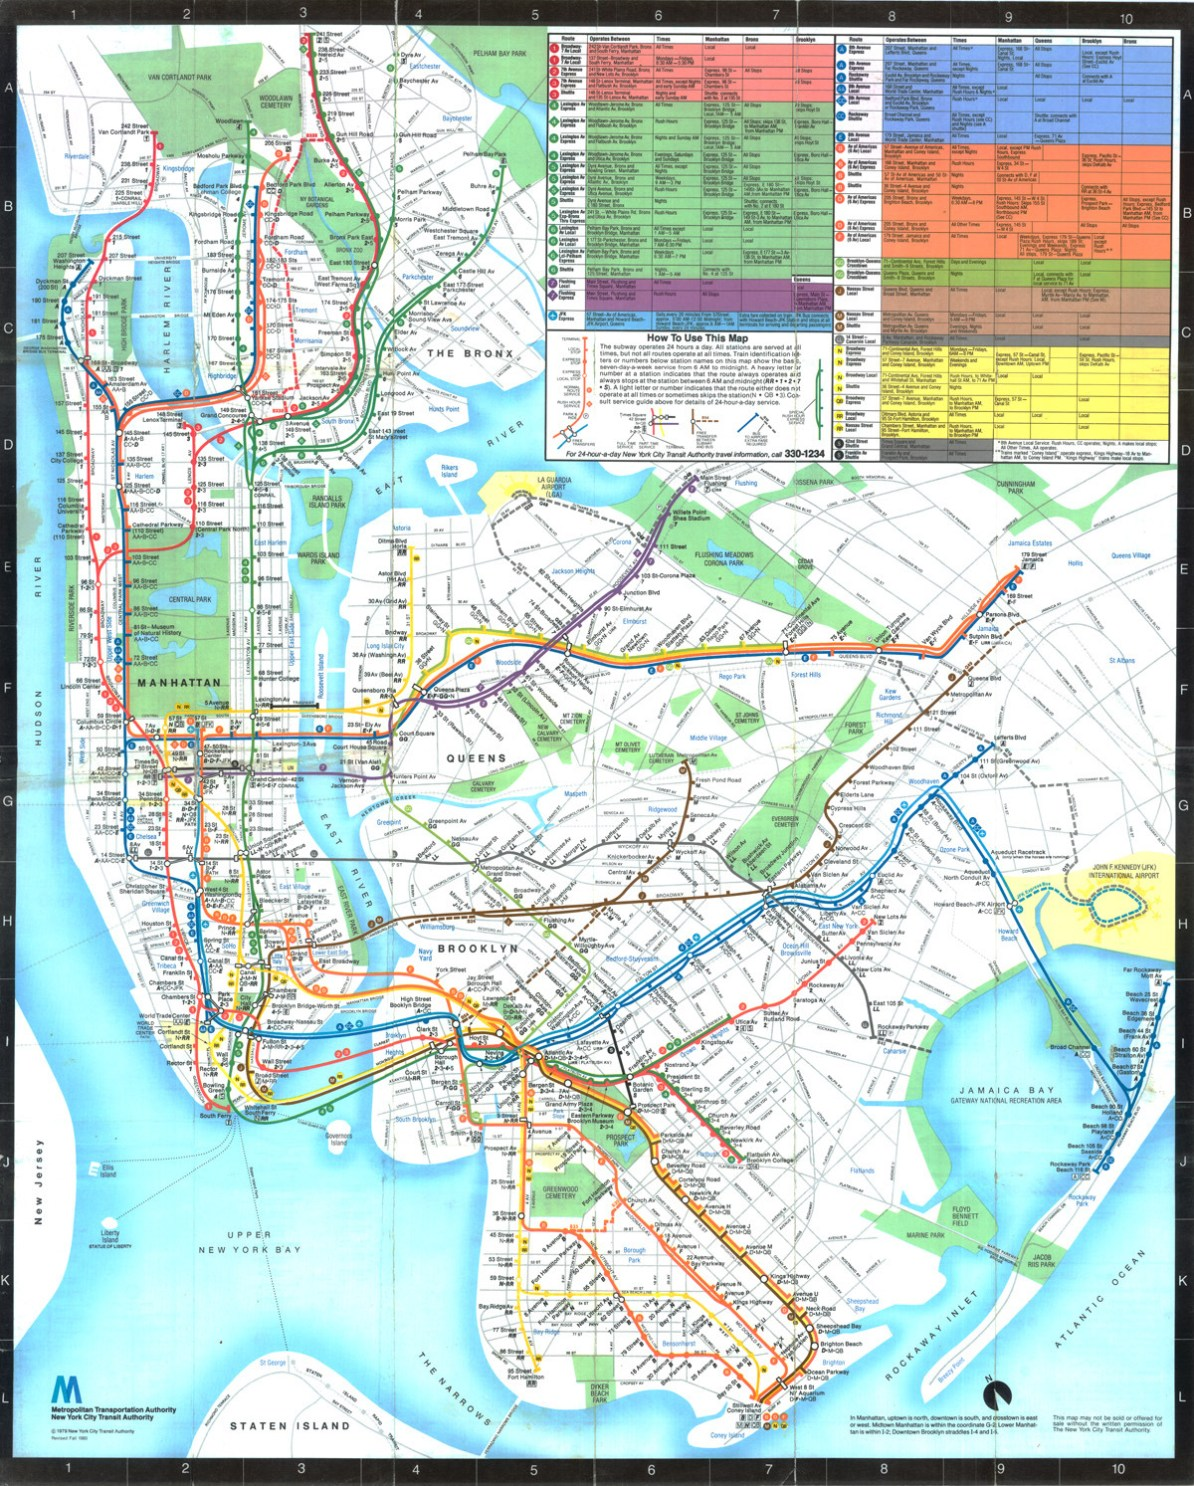 Subway Map Nyc 2014.Transit Maps Submission Historical Map 1979 New York Subway Map